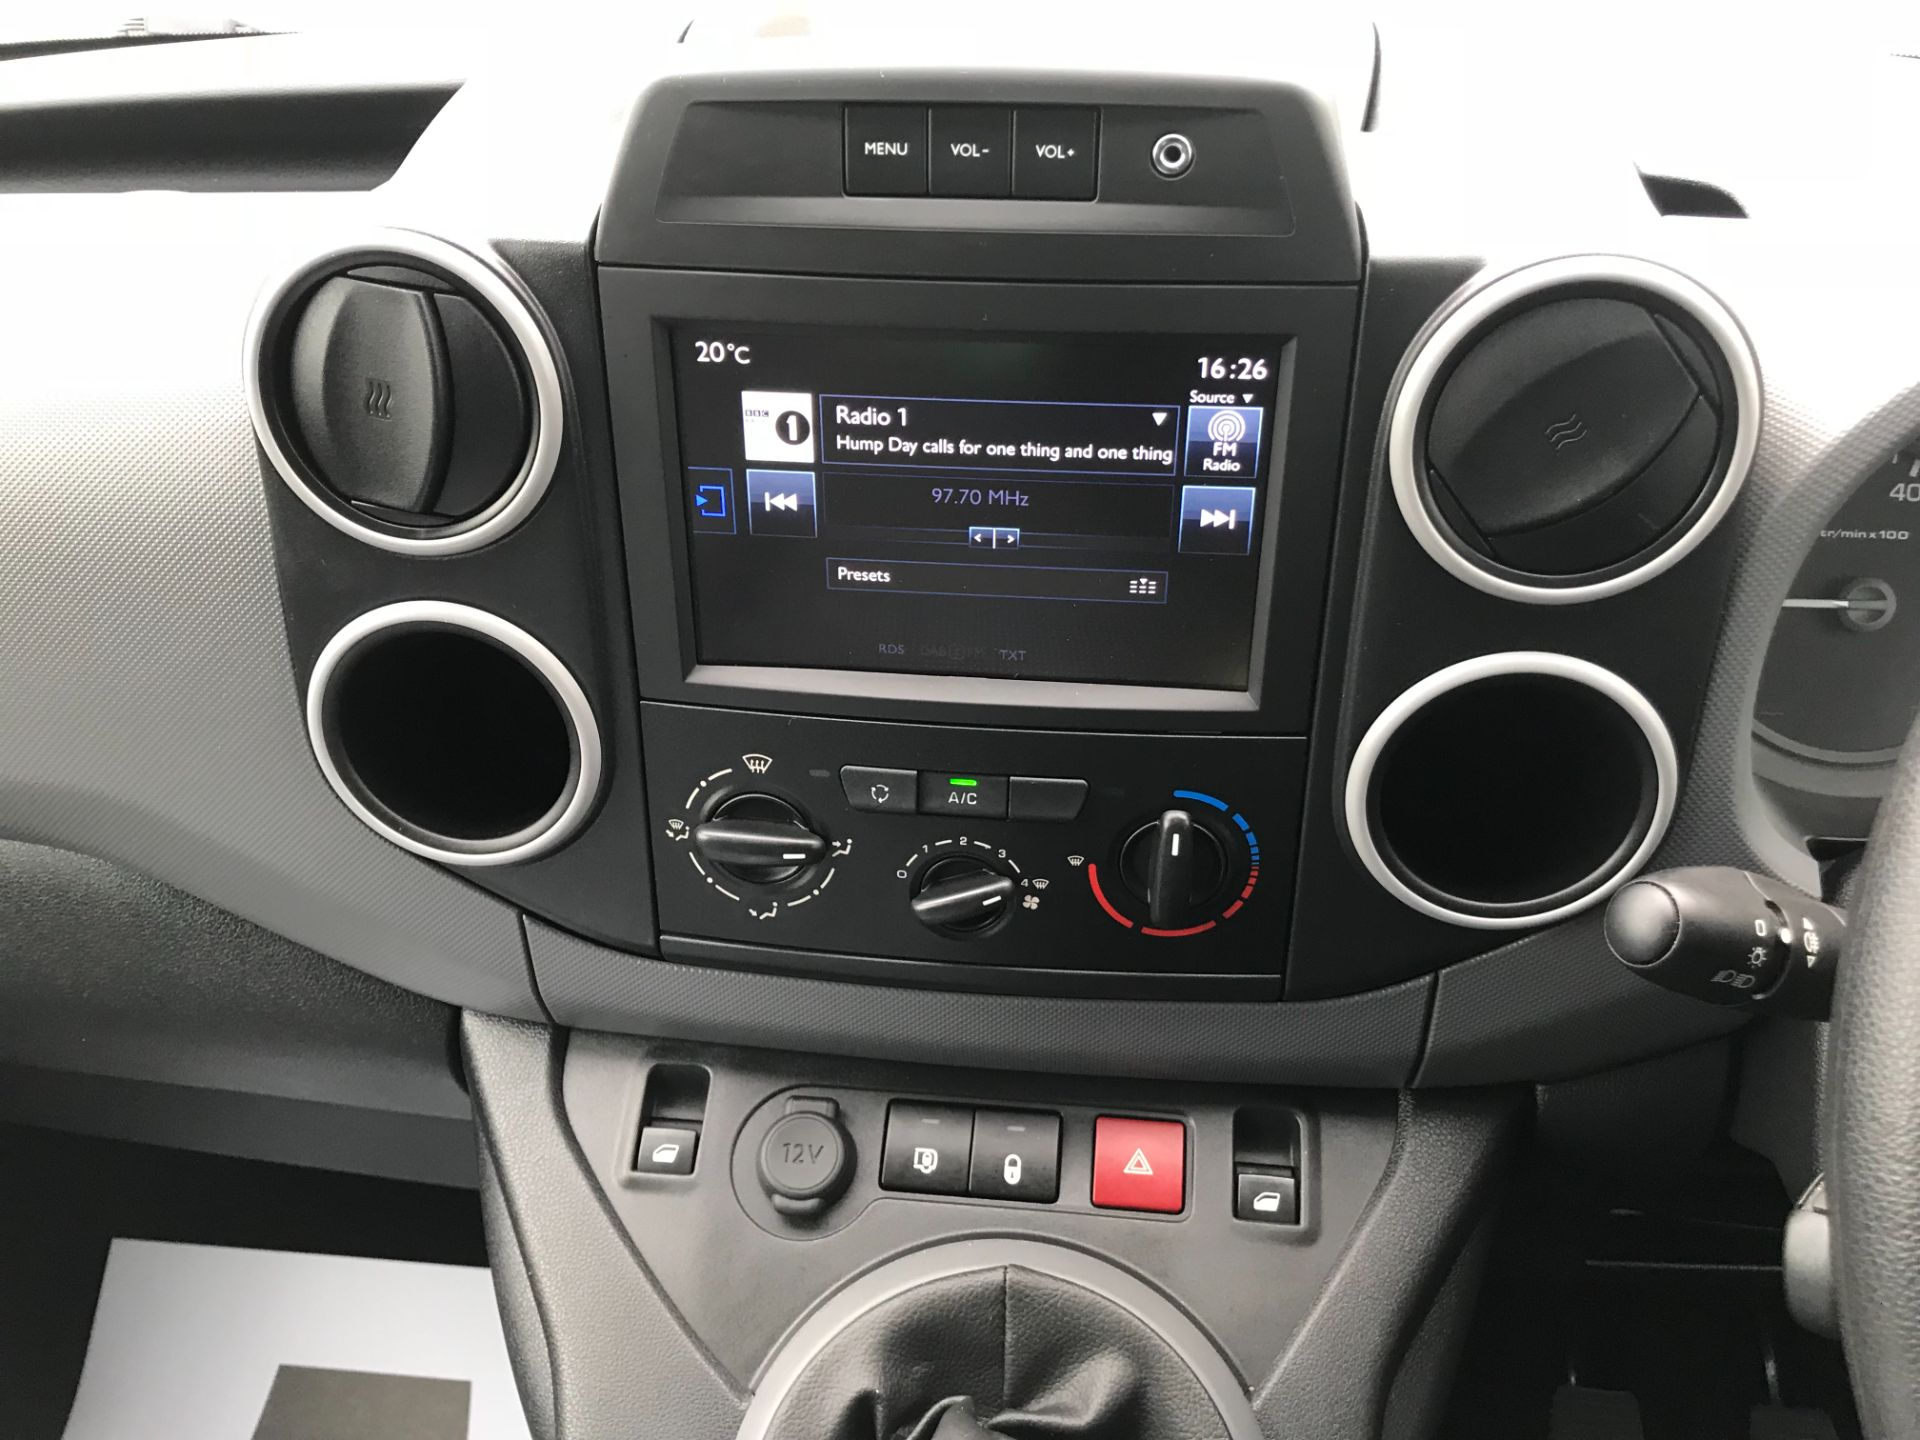 2017 Peugeot Partner L1 850 1.6 BLUEHDI 100 PROFESSIONAL (NON S/S)EURO 6 *Limited to 70MPH* (NV17SYO) Image 20